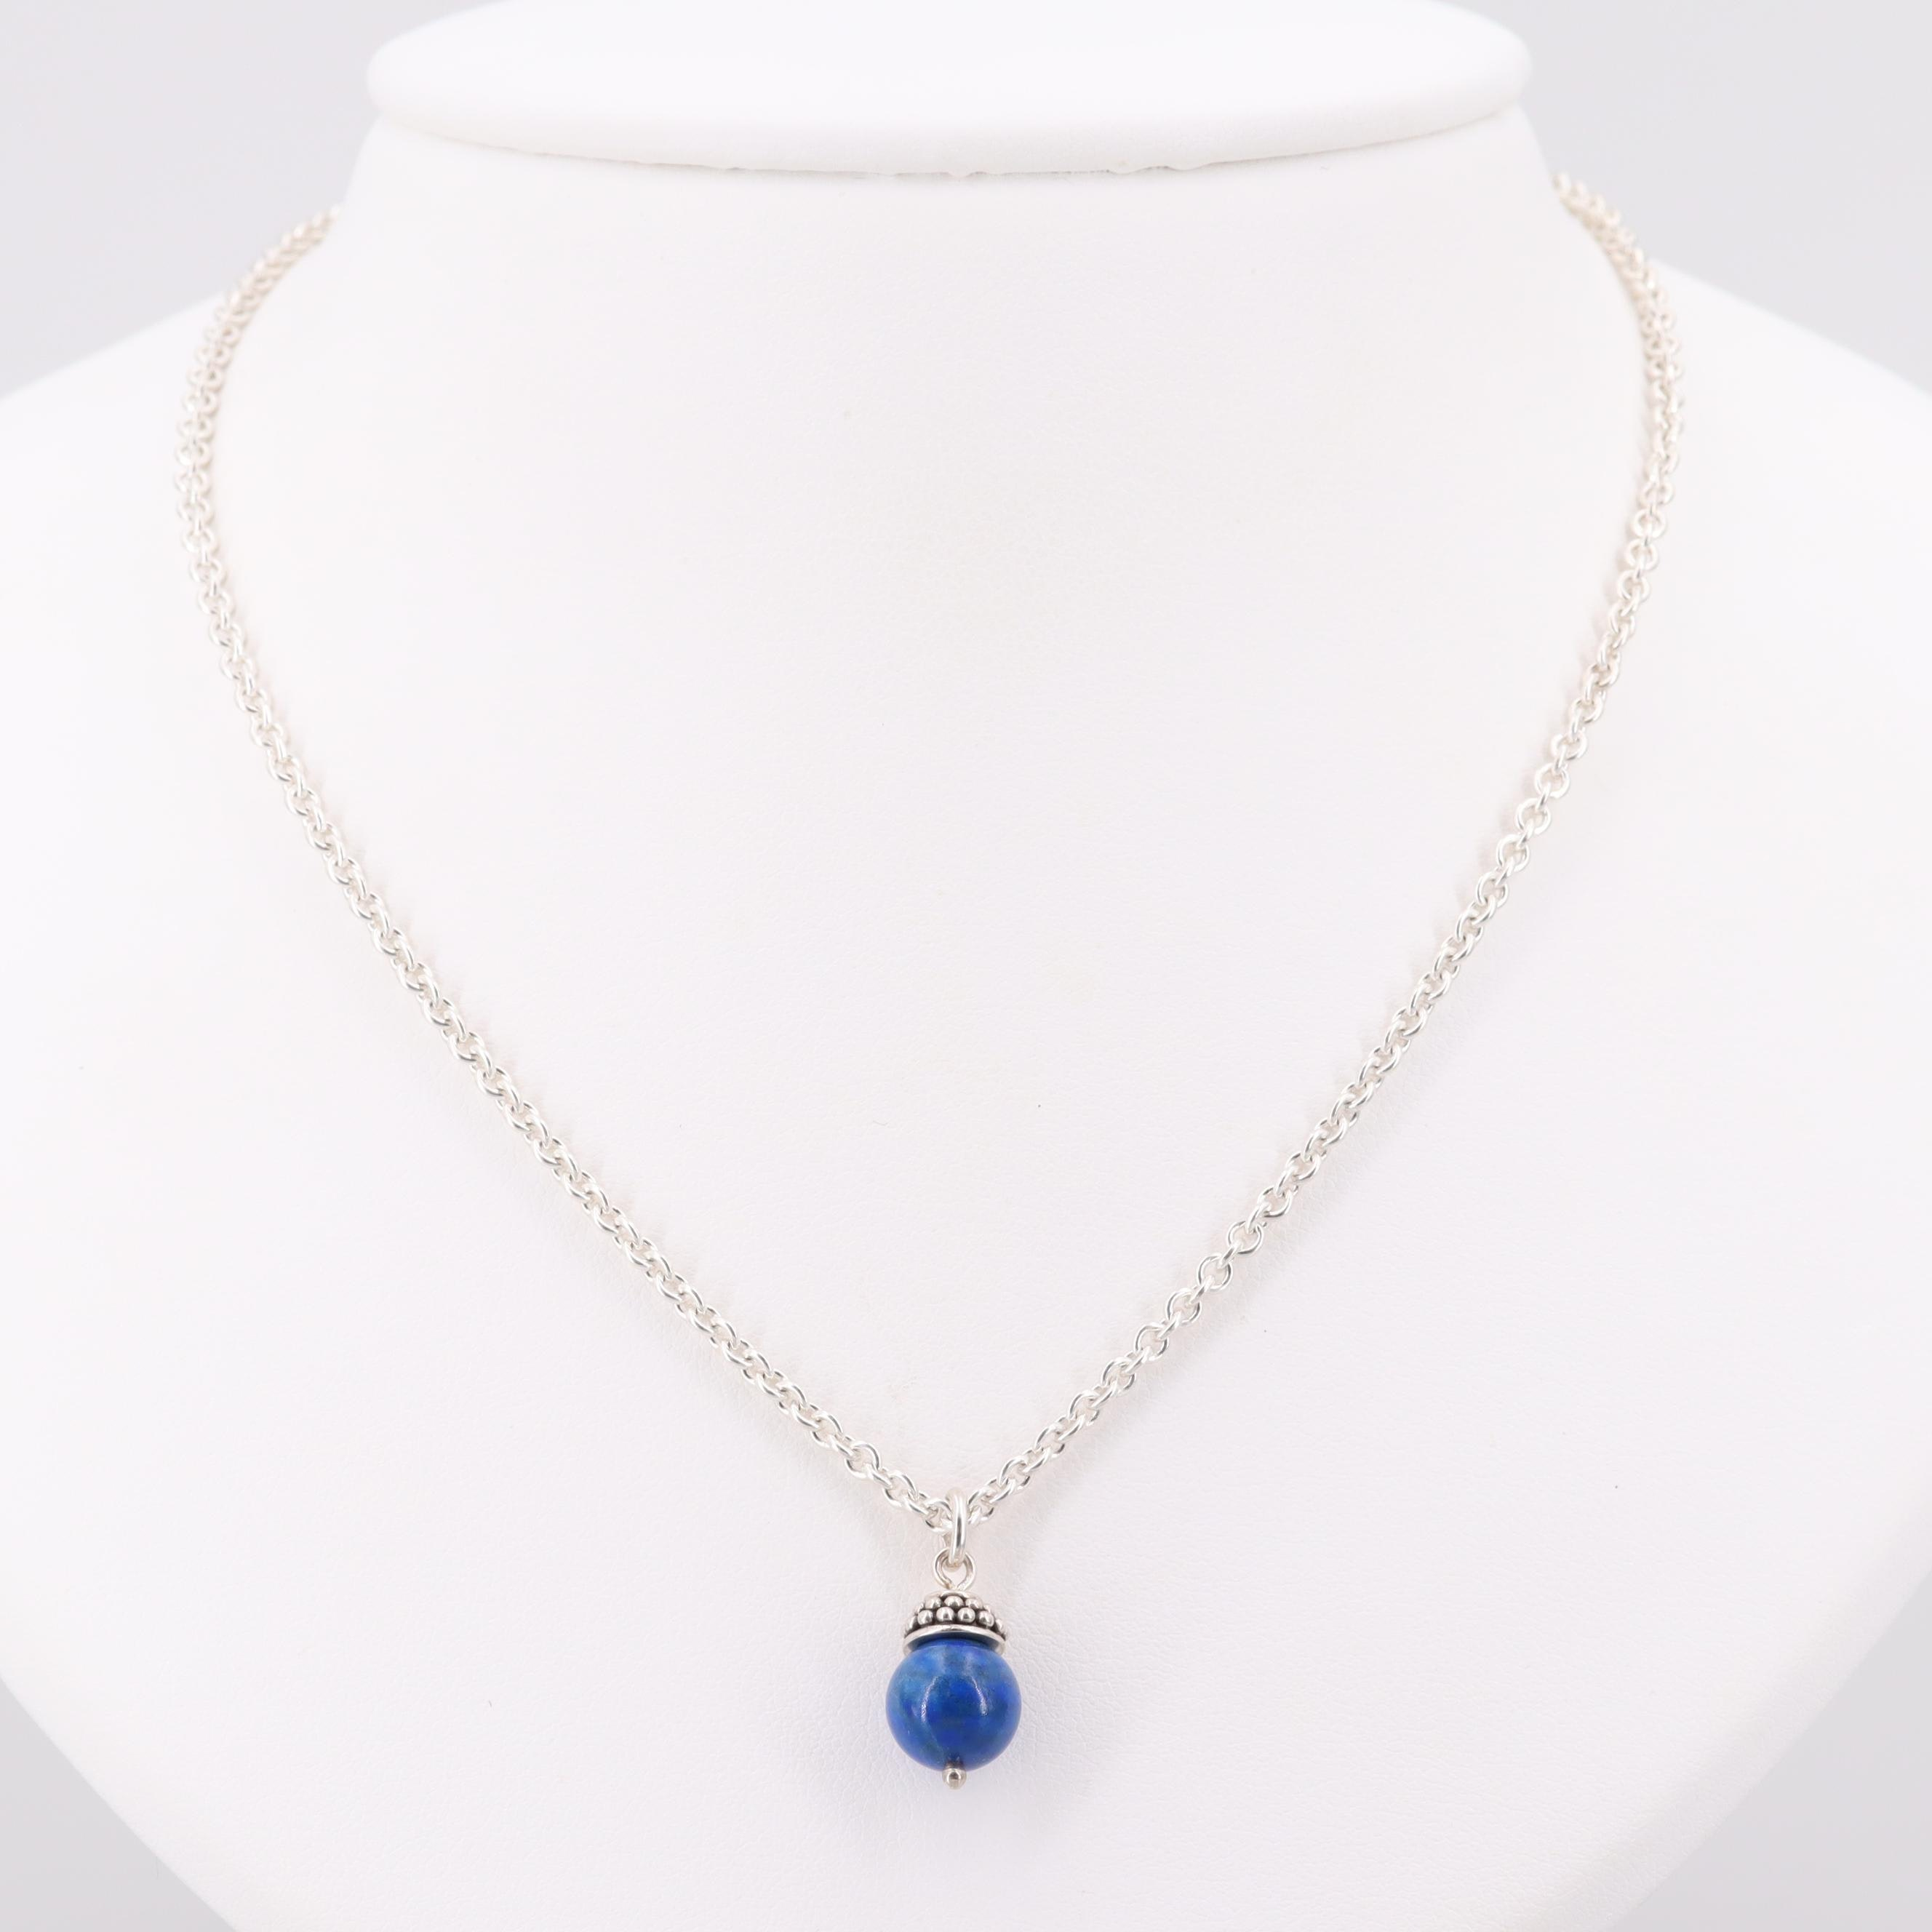 Sterling Silver Endless Necklace with Lapis Lazuli Pendant